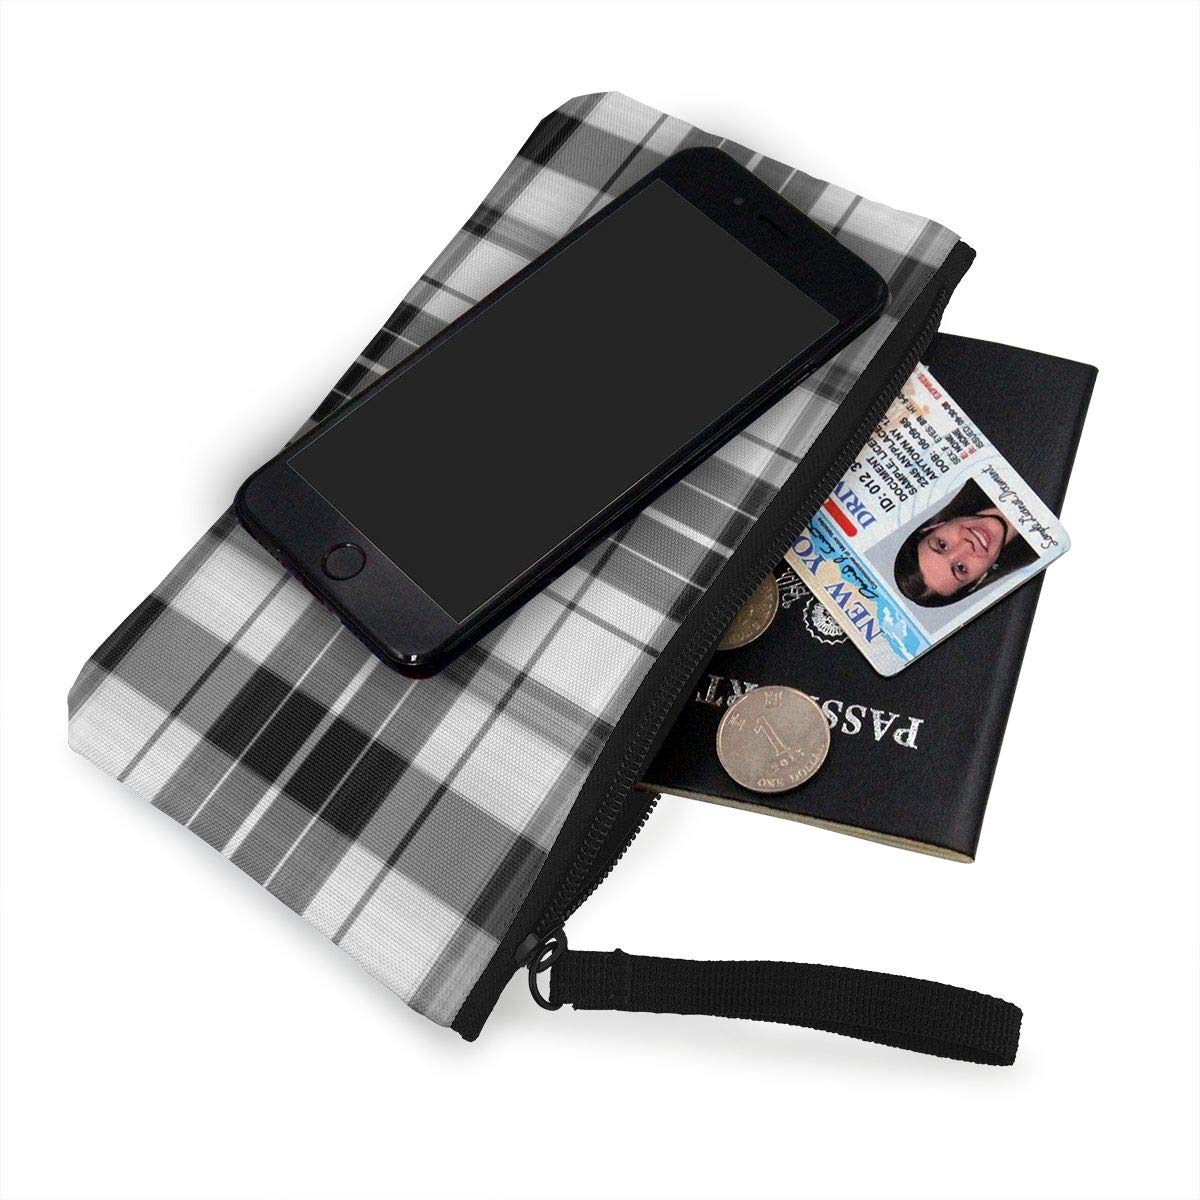 Coin Pouch Scottish Black And White Plaid Canvas Coin Purse Cellphone Card Bag With Handle And Zipper